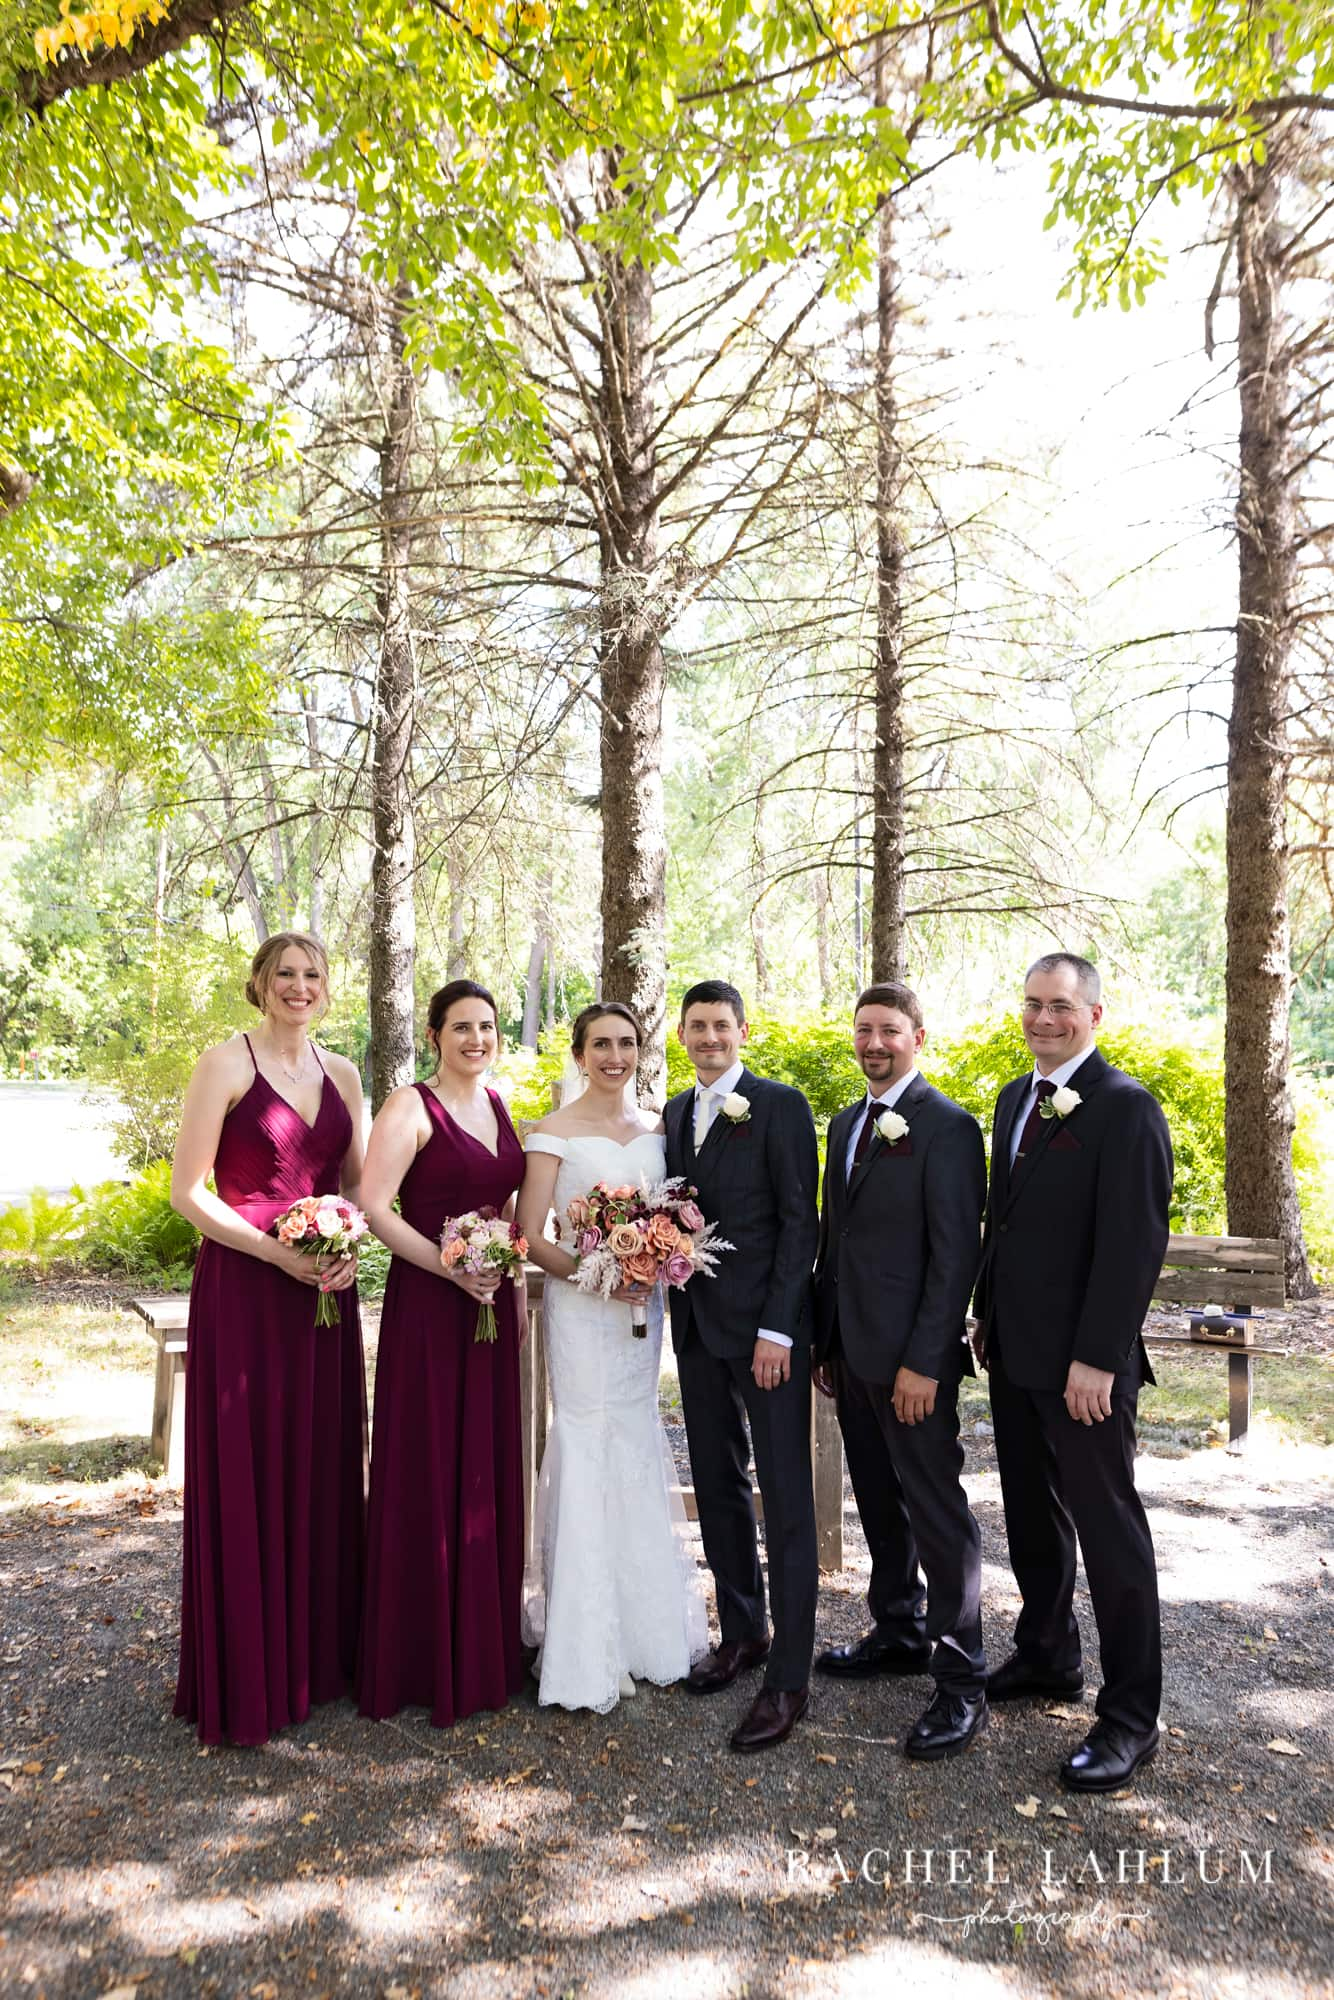 Wedding party pose for a photo under the trees after St. Paul wedding ceremony.